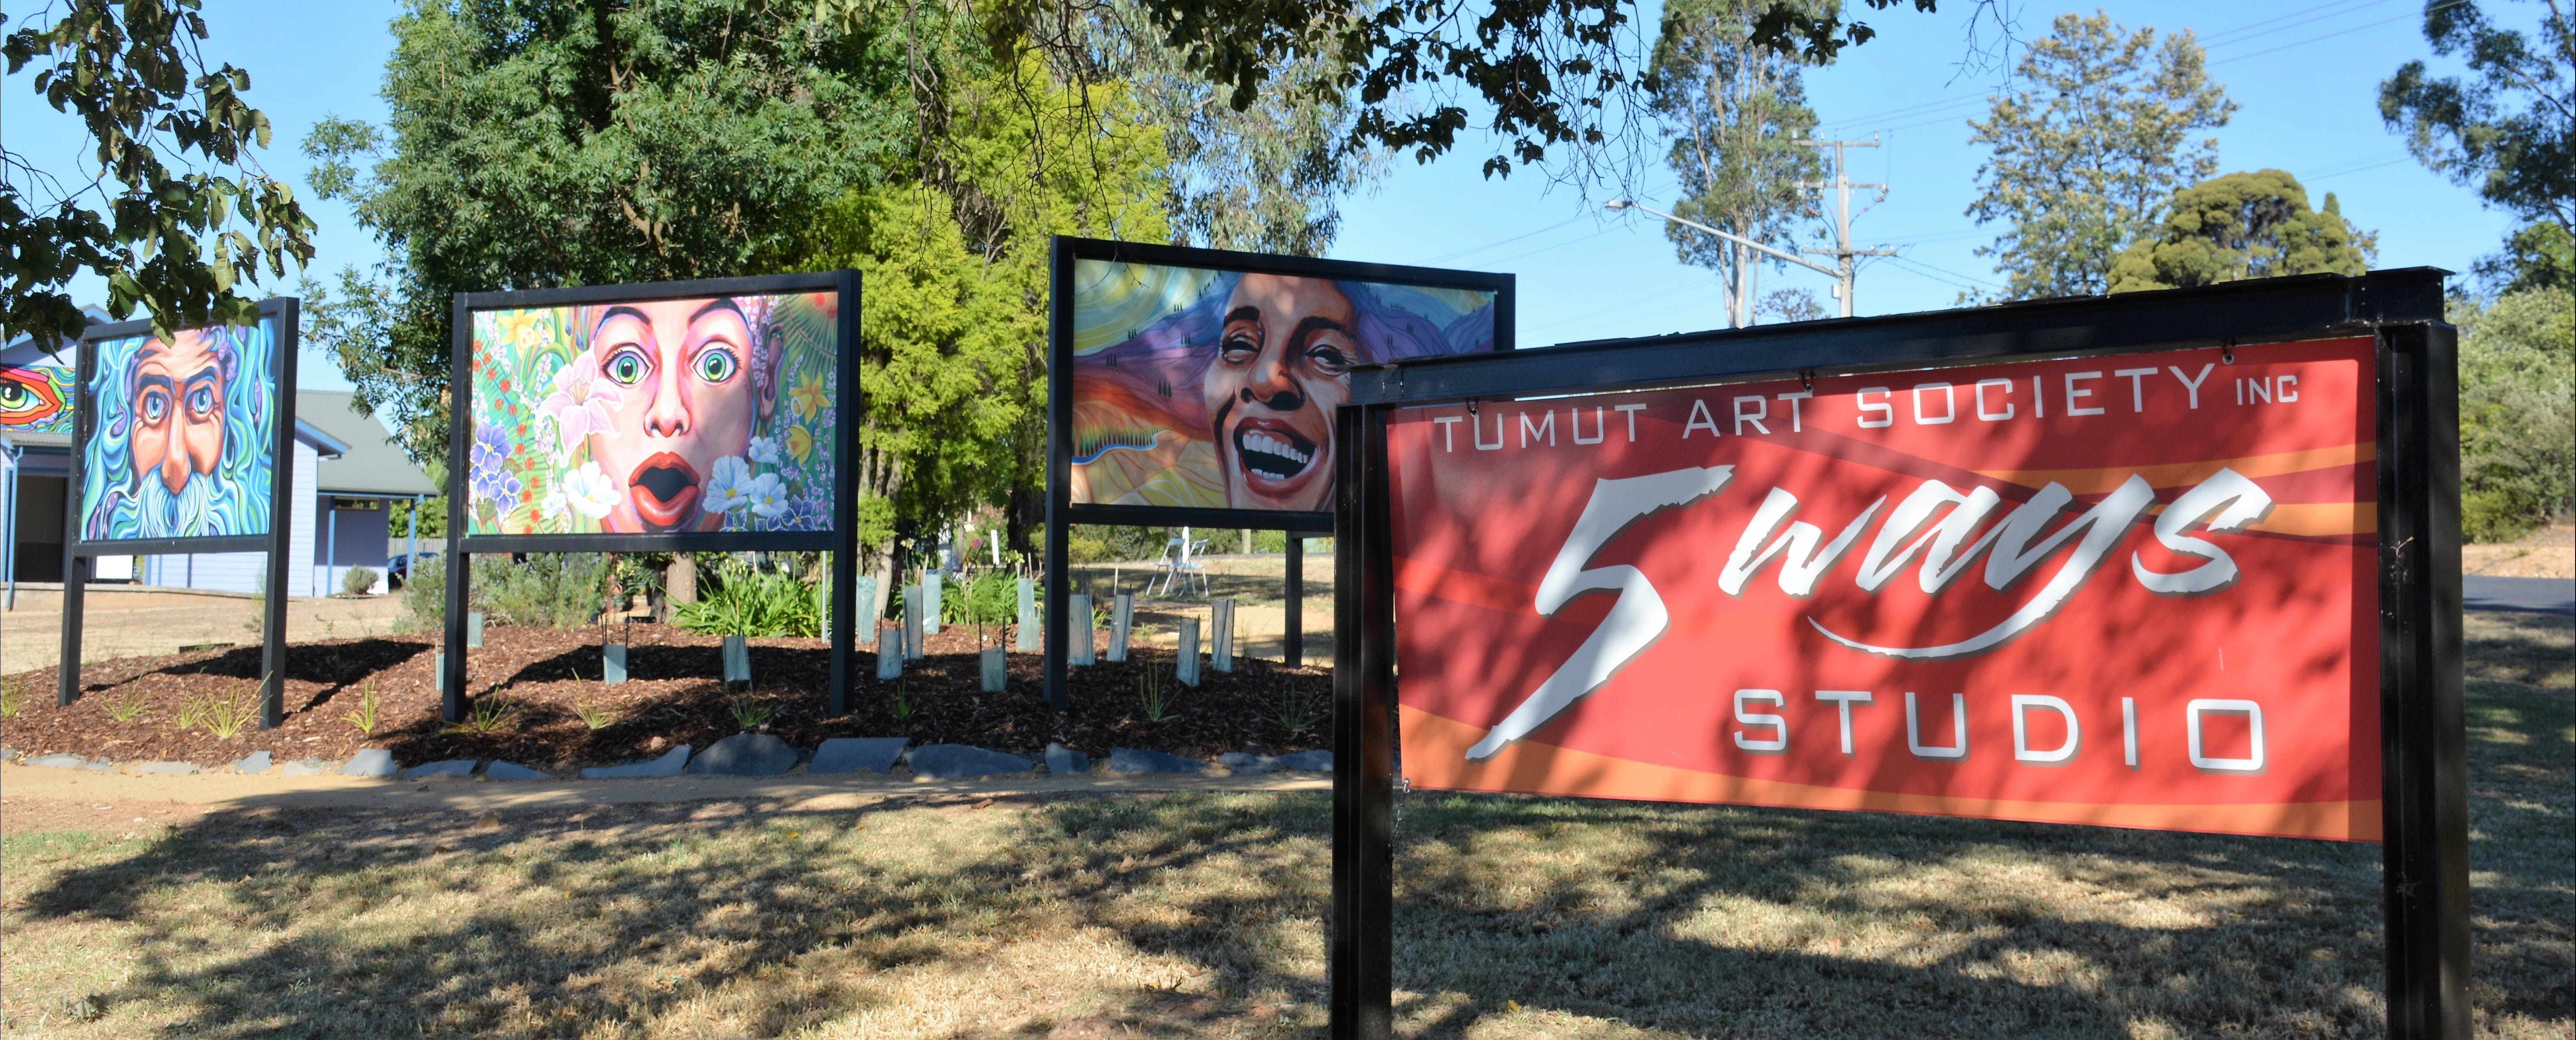 Tumut Art Society 5Ways Gallery - Tourism Adelaide